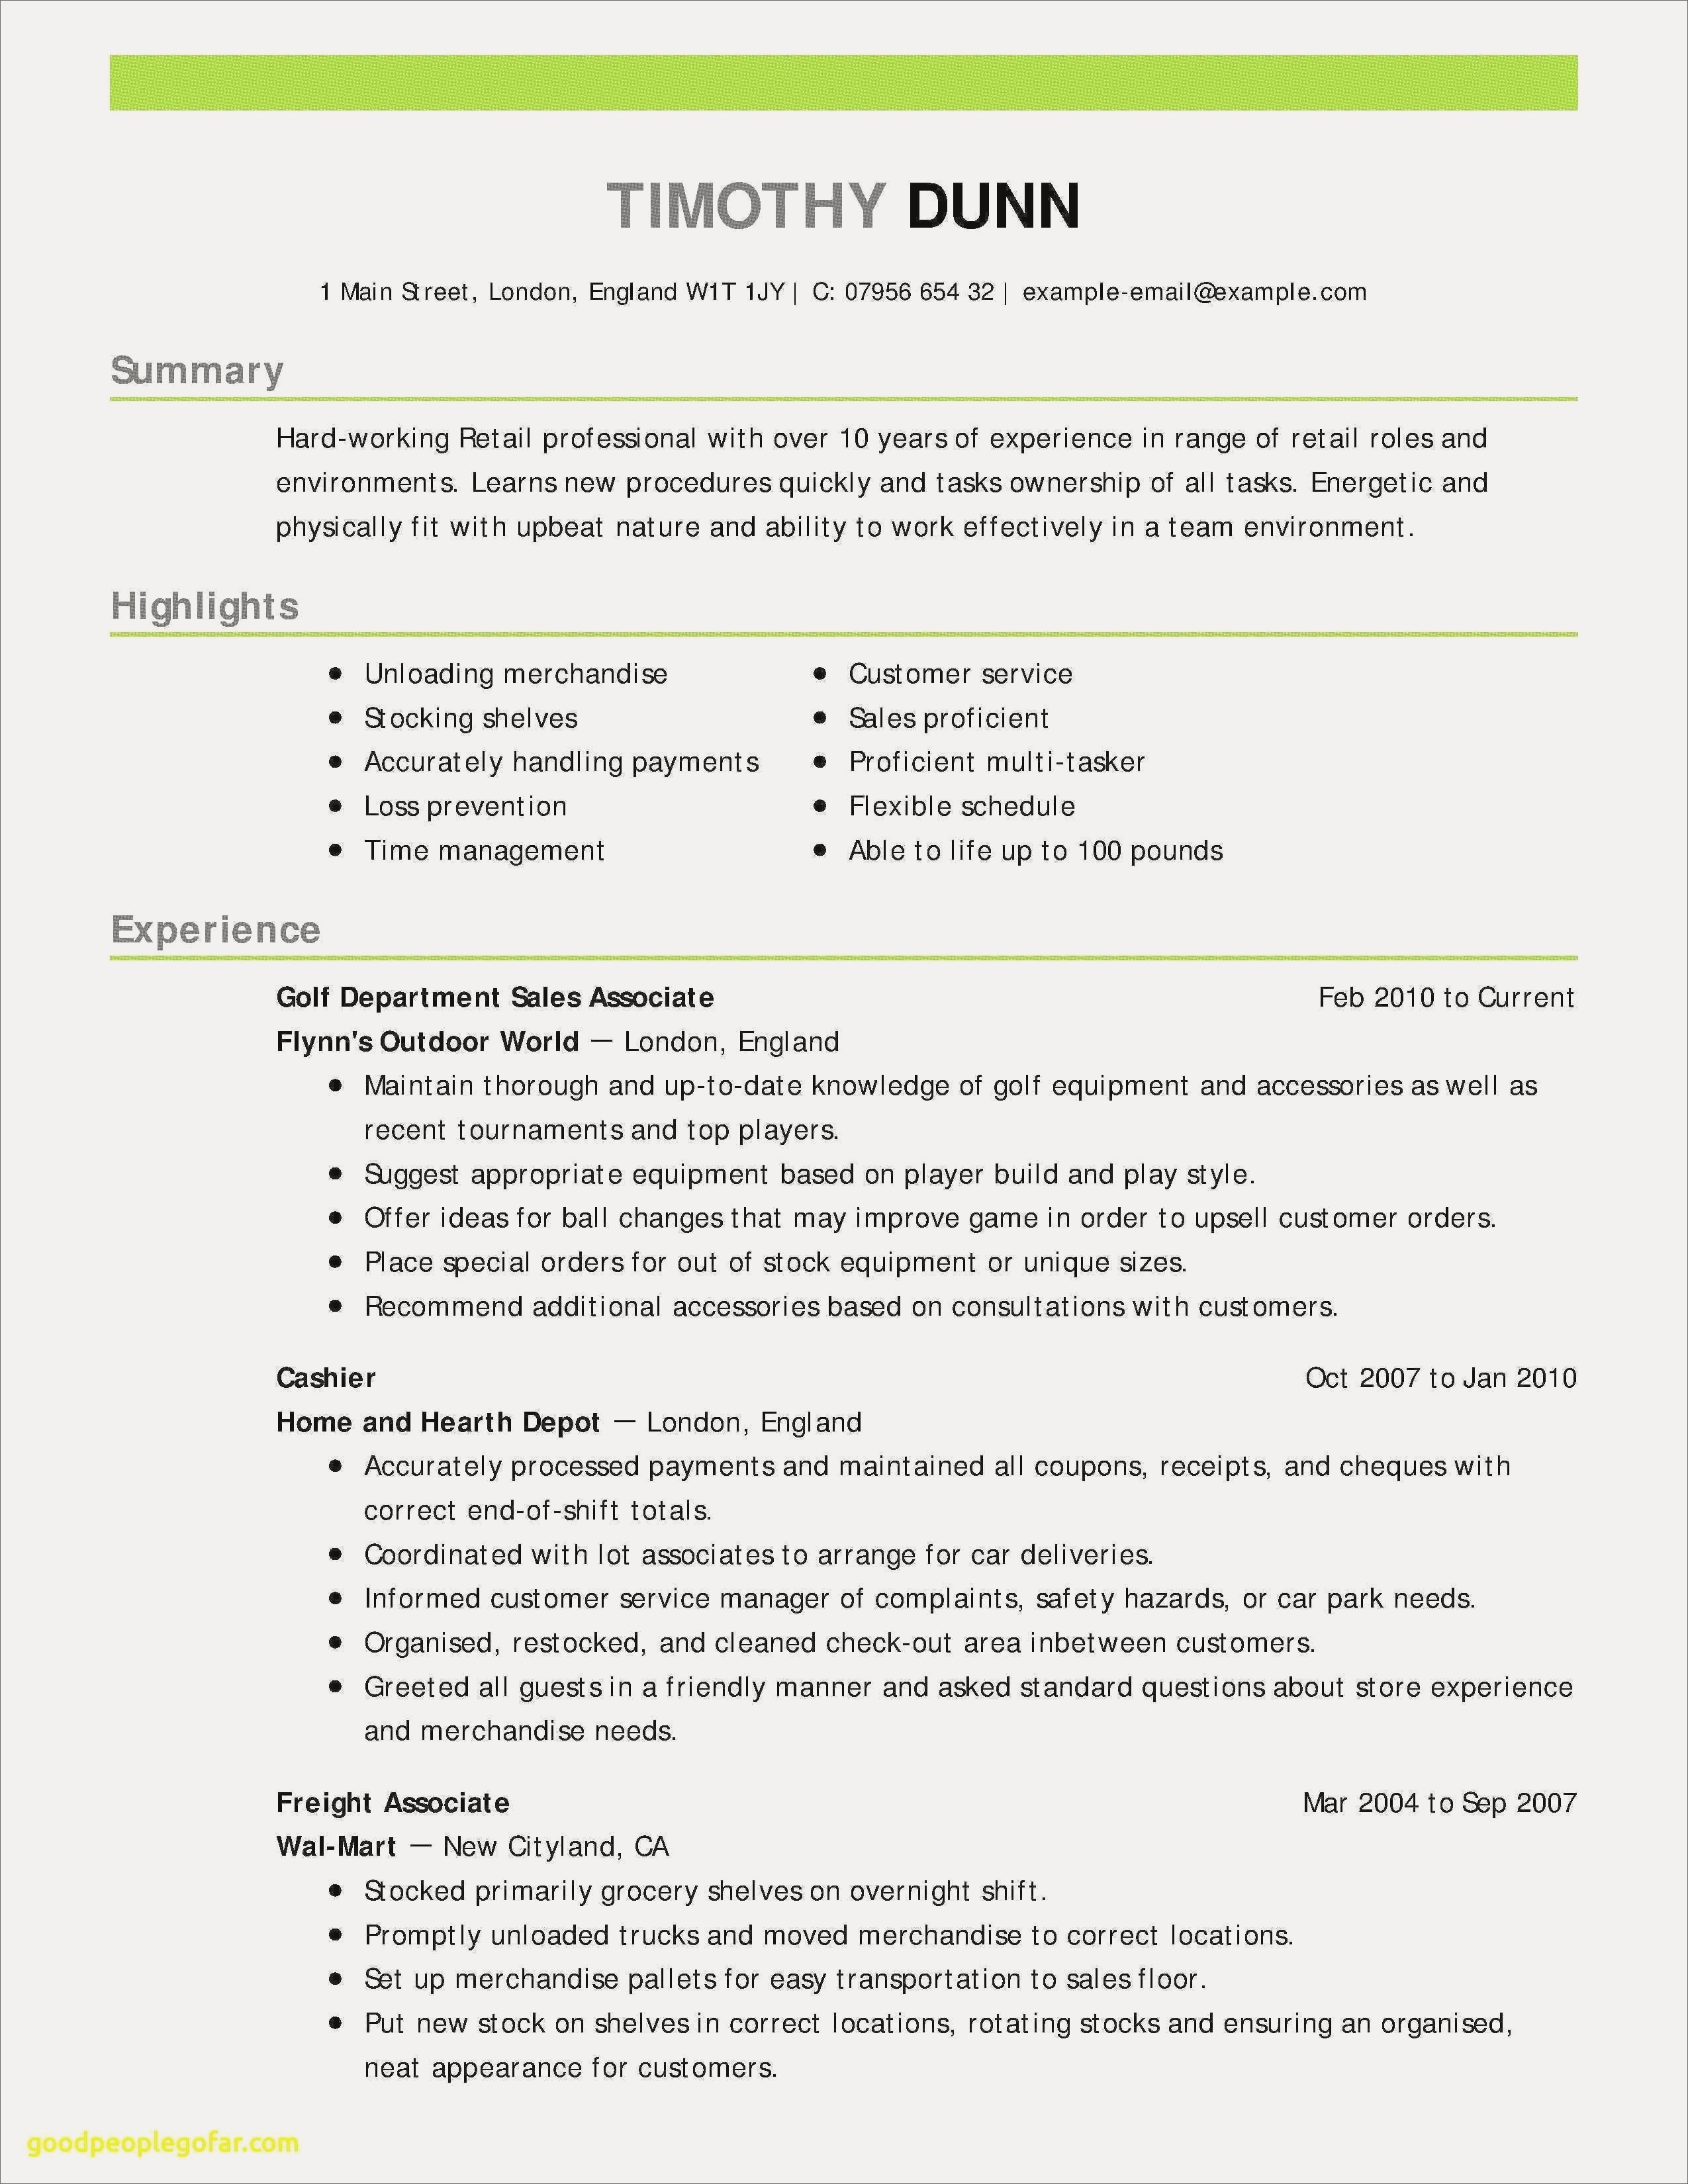 Skills for Resume Customer Service - Resume Examples Skills and Abilities Best Customer Service Resume